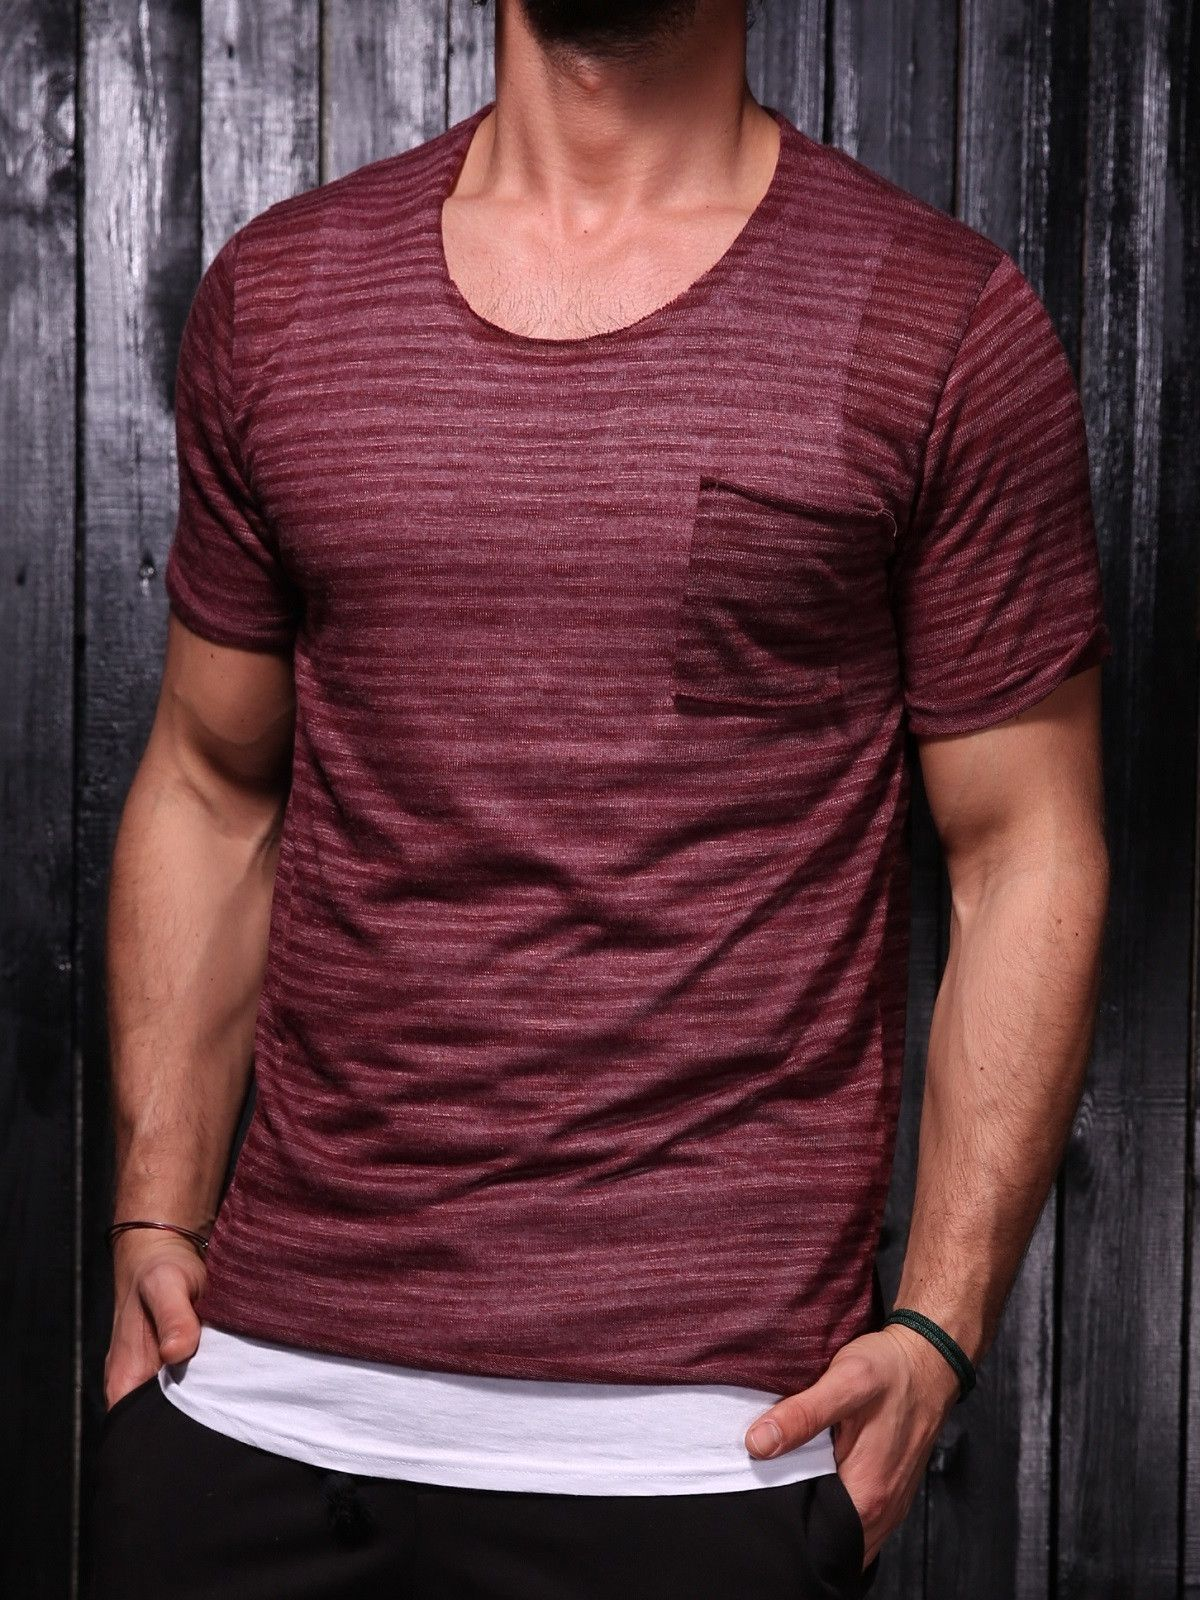 f77eaead5504 K&B Men C Thru Stripes Pocket T-shirt - Burgundy in 2019 | aj | Men ...